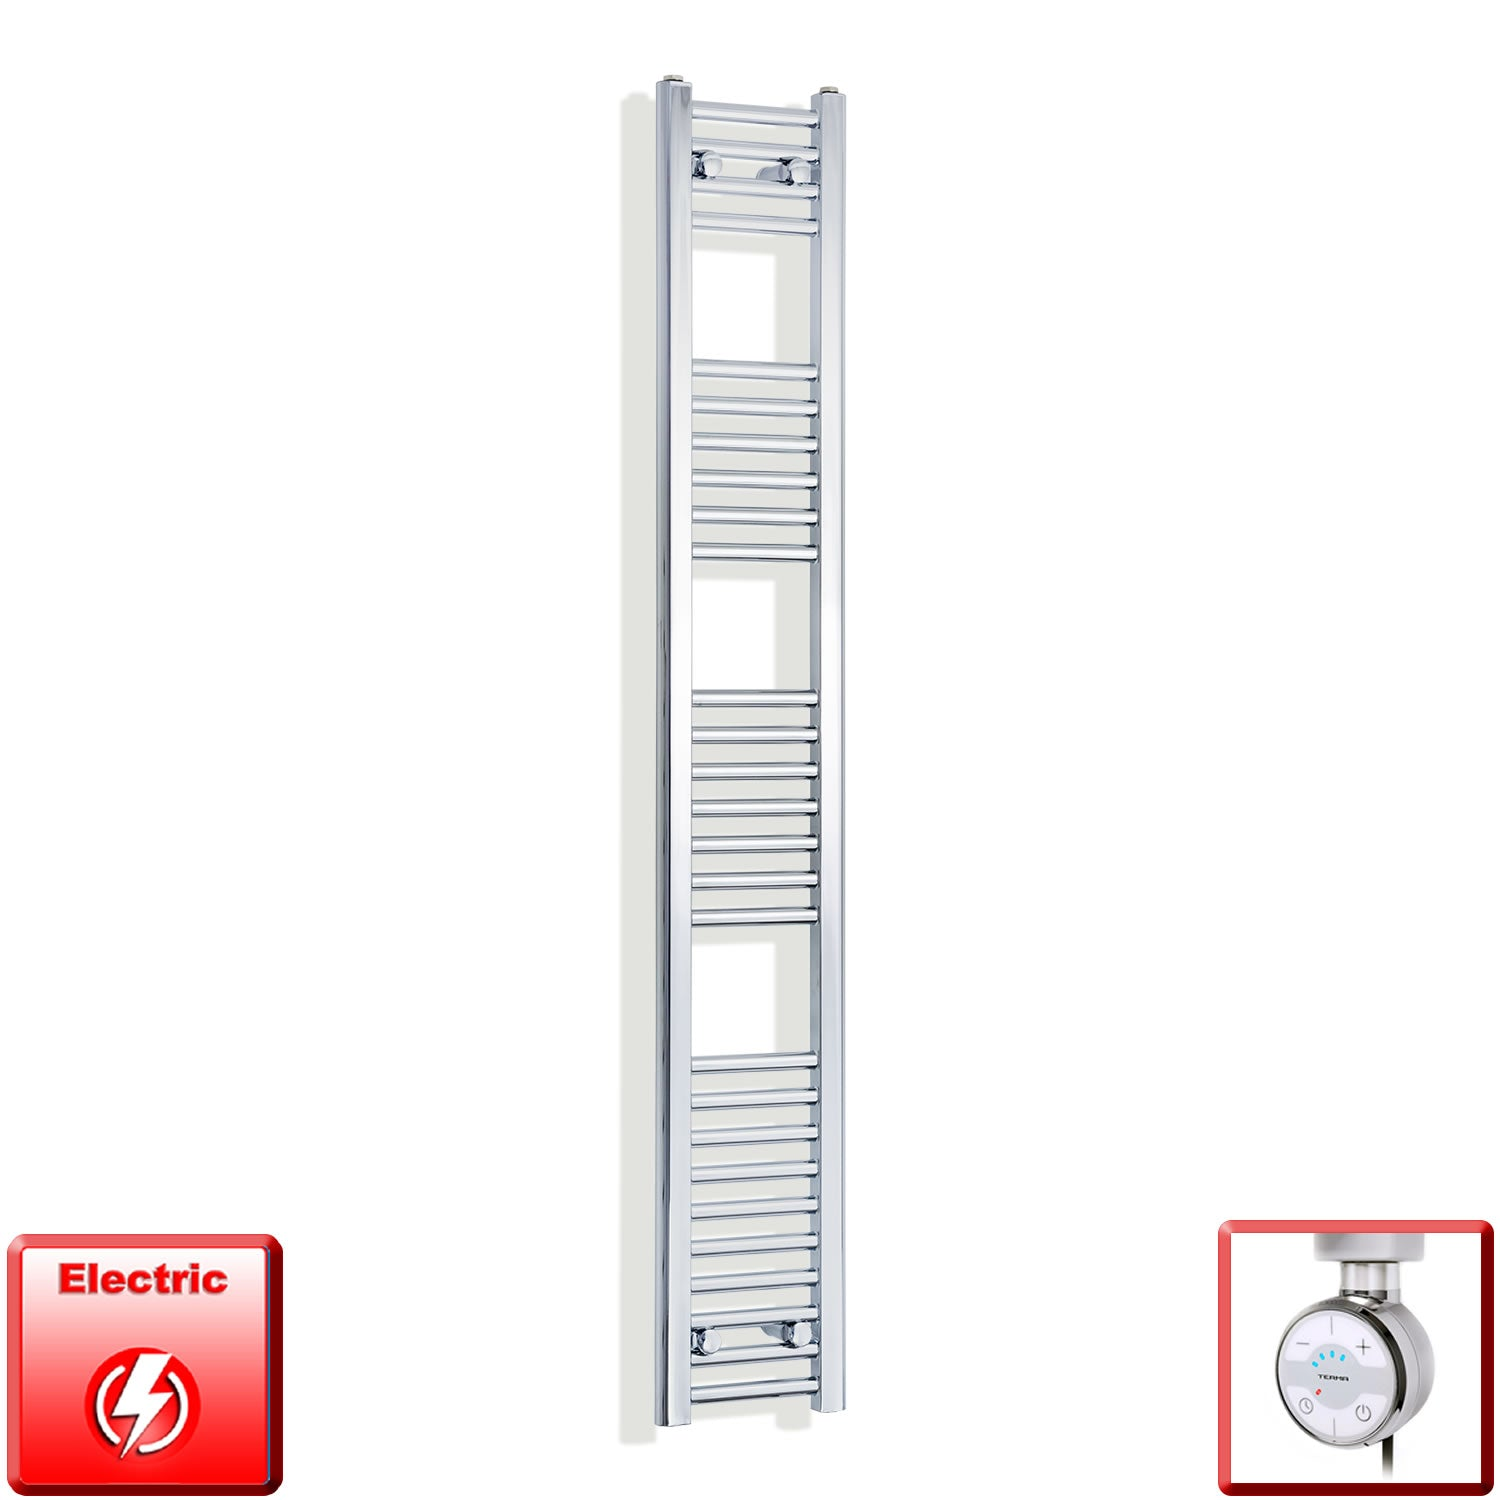 200mm Wide 1600mm High Flat Chrome Pre-Filled Electric Heated Towel Rail Radiator HTR,MOA Thermostatic Element